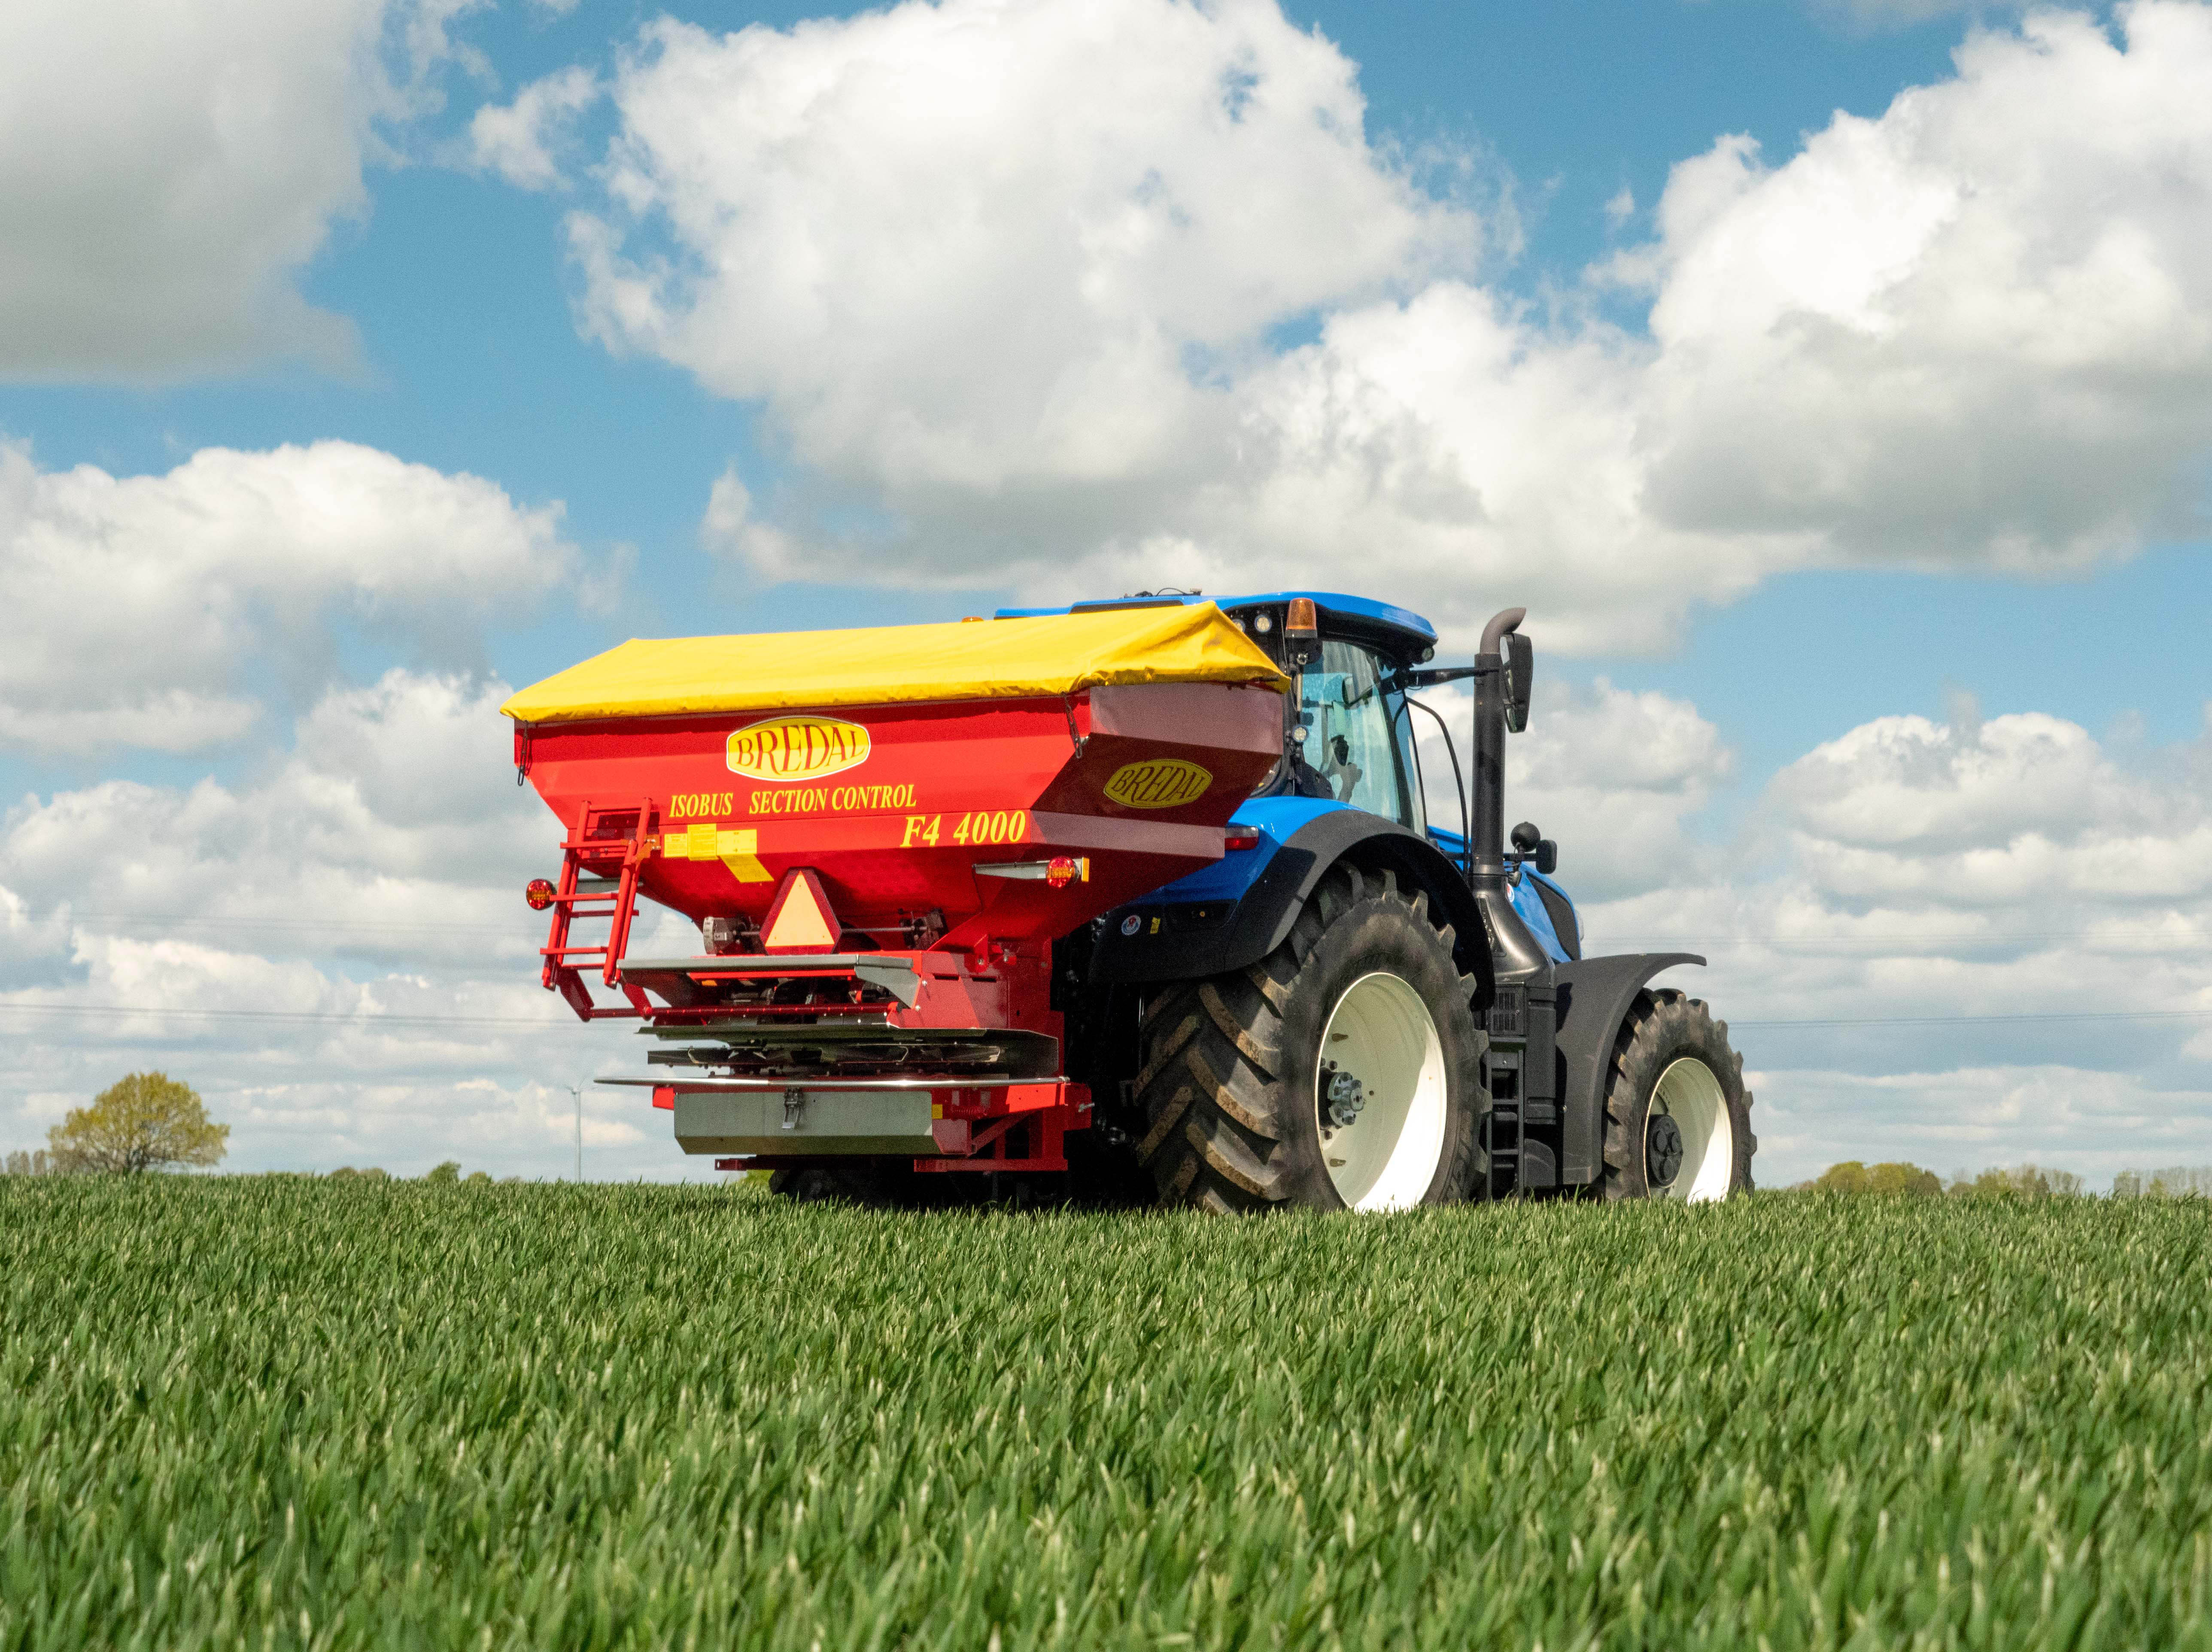 KRM launches IsoBus fertiliser spreader with belt feed system